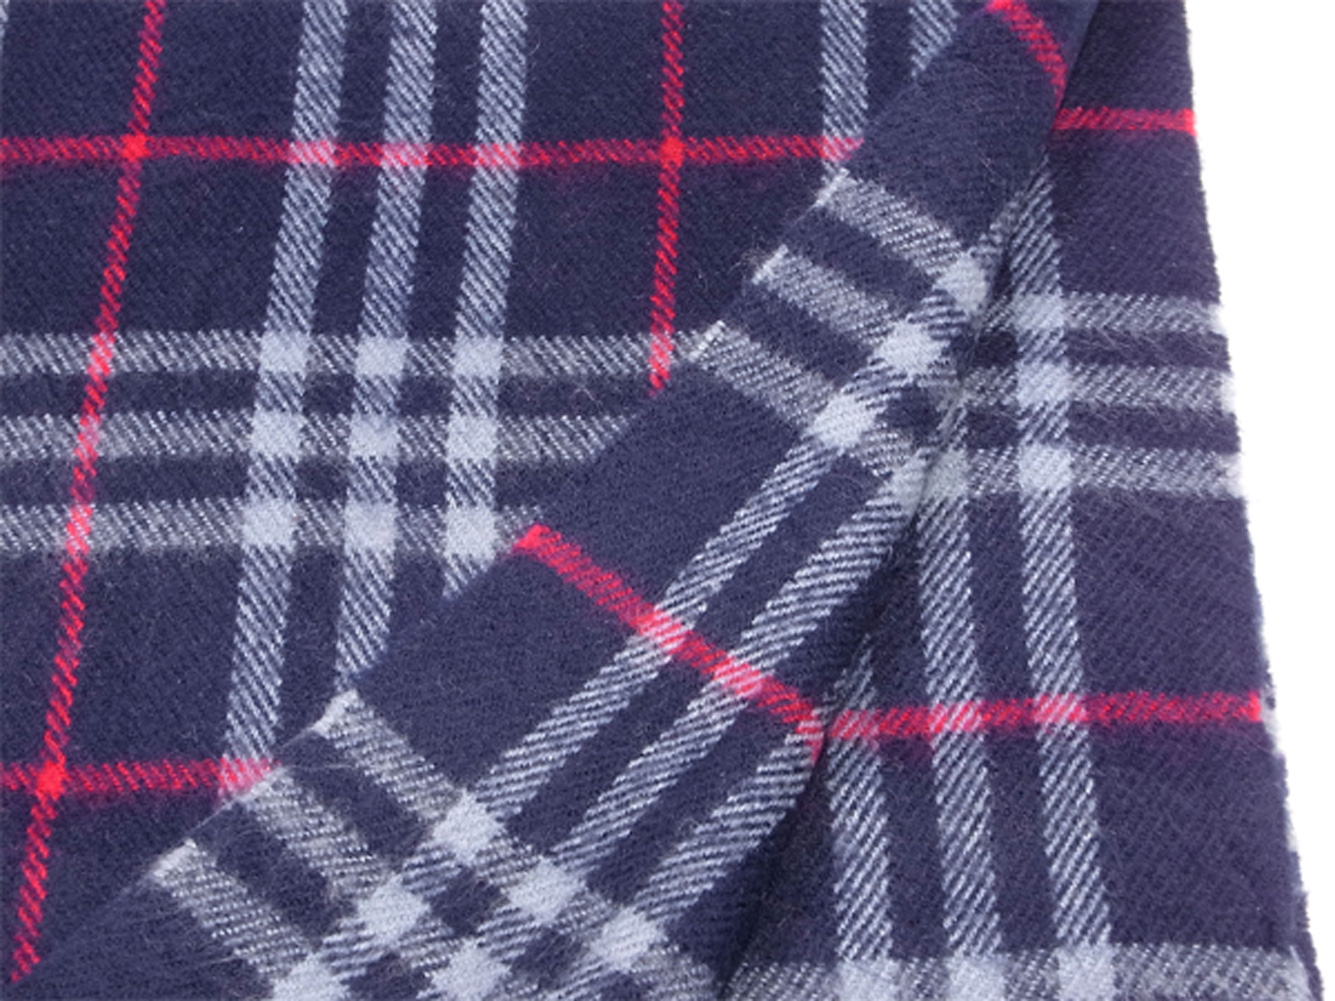 da279cdd4da83 ... Lady's men check navy-blue red wool hair popularity sale T9968 with the Burberry  BURBERRY ...